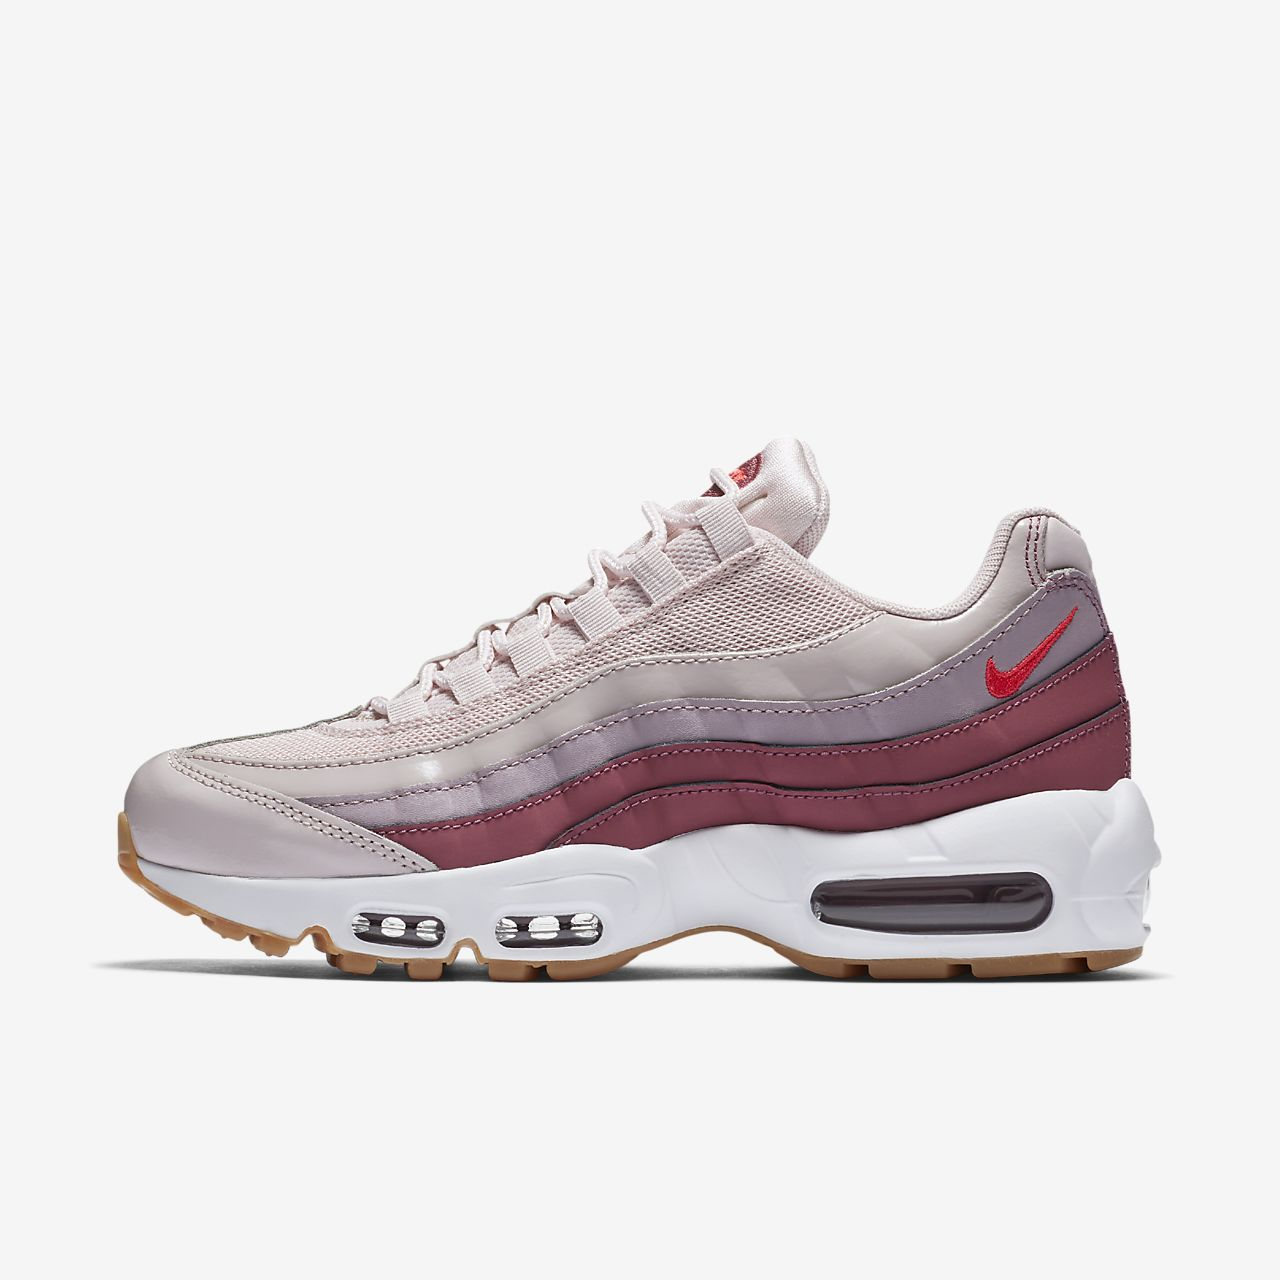 nike air max 95 id dames